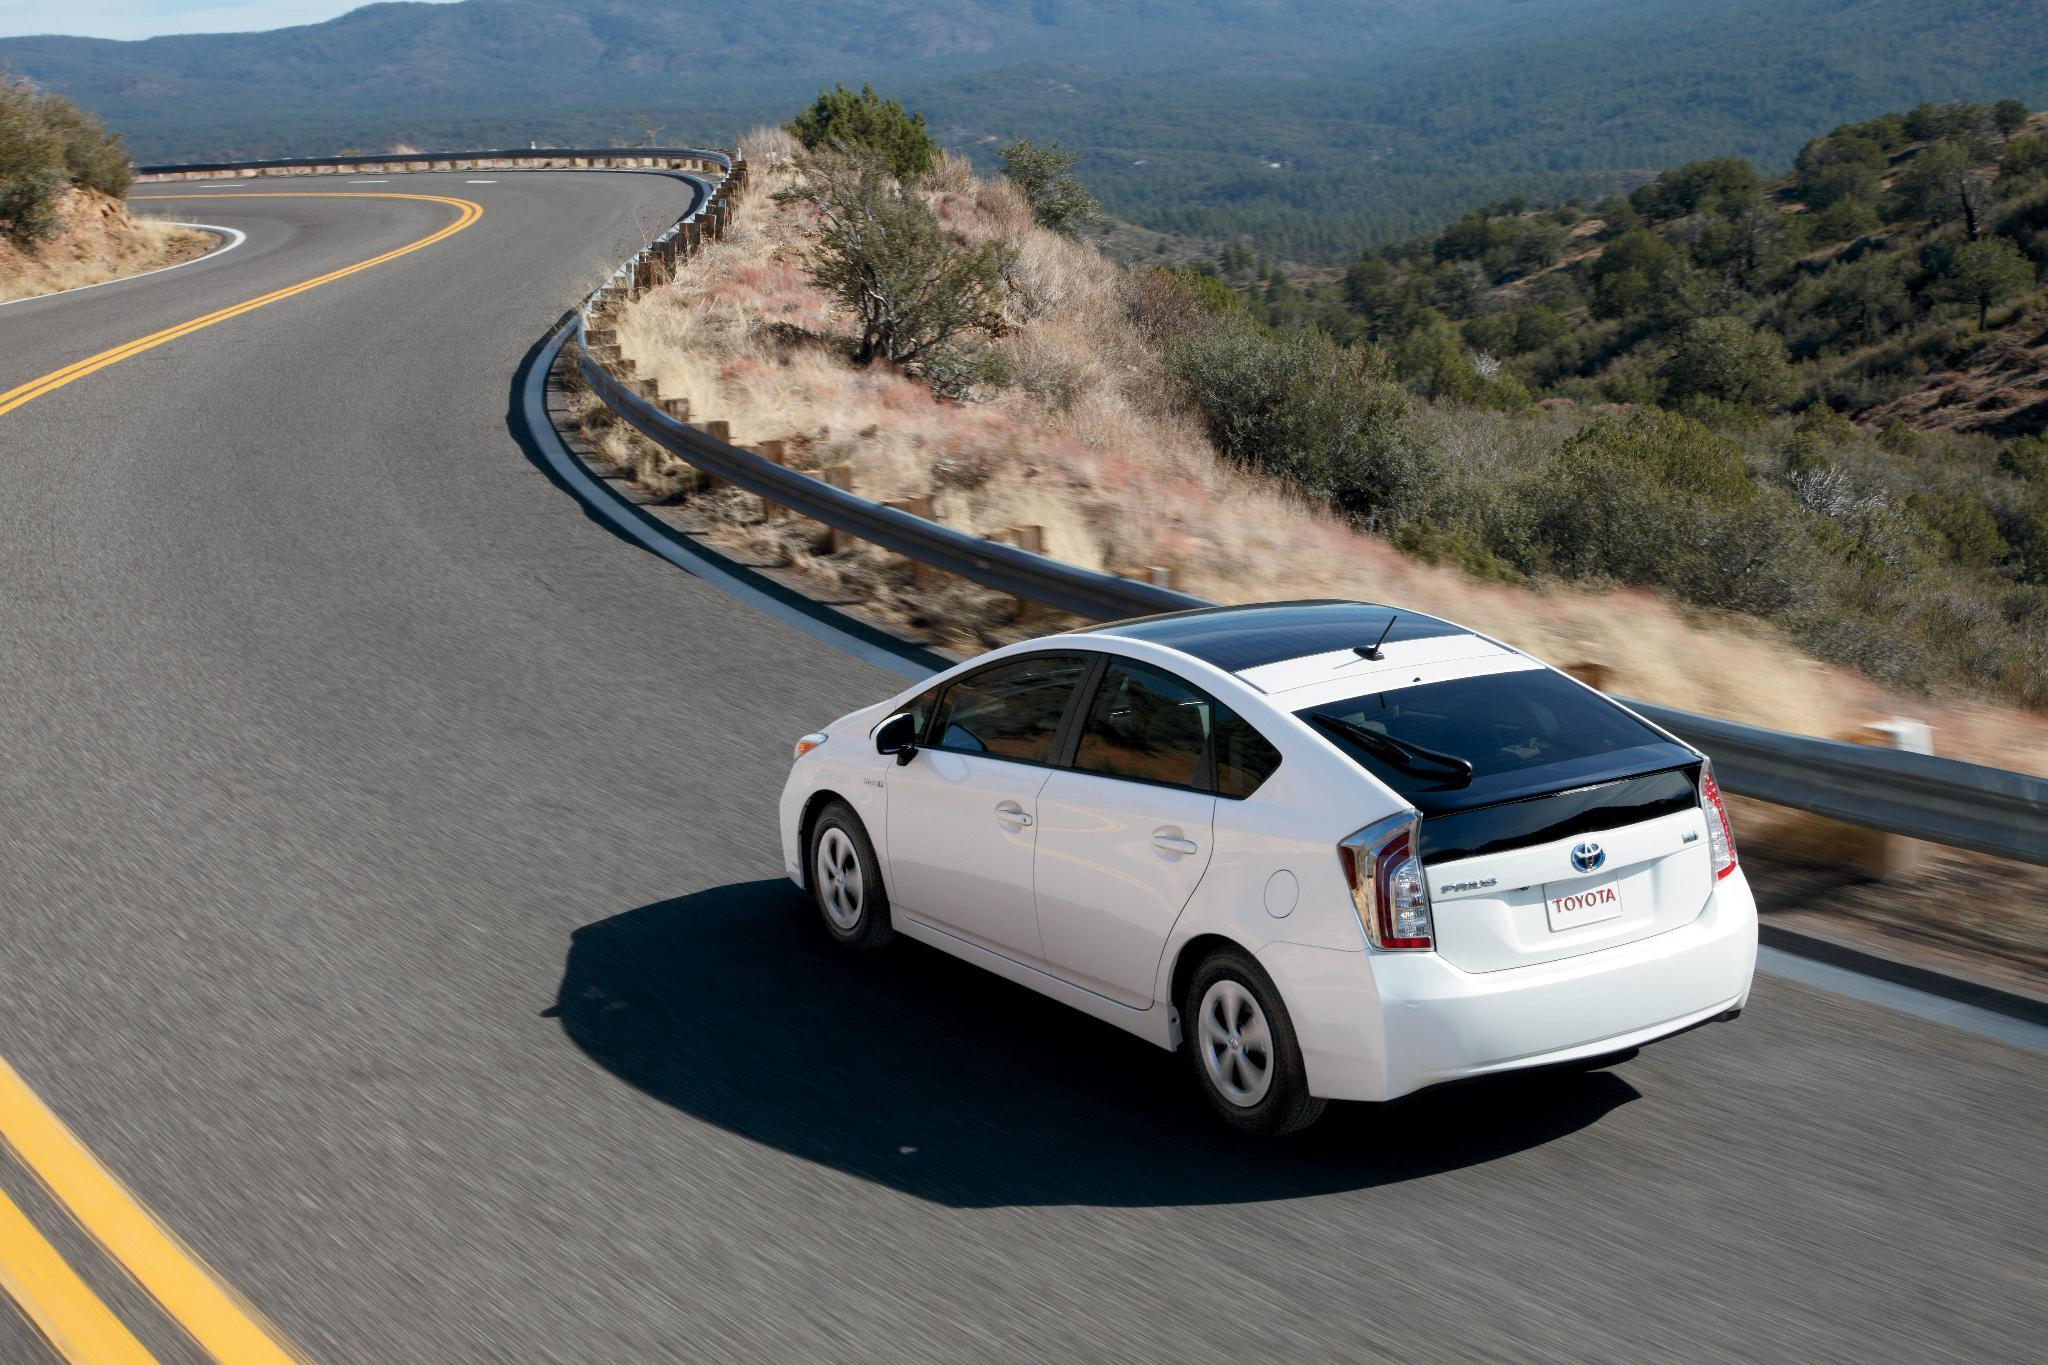 We're always improving the best. #DYK the 1st-generation Prius got an estimated 41 MPG combined? Today's gets 50 MPG. http://t.co/QTOkLIRKuy